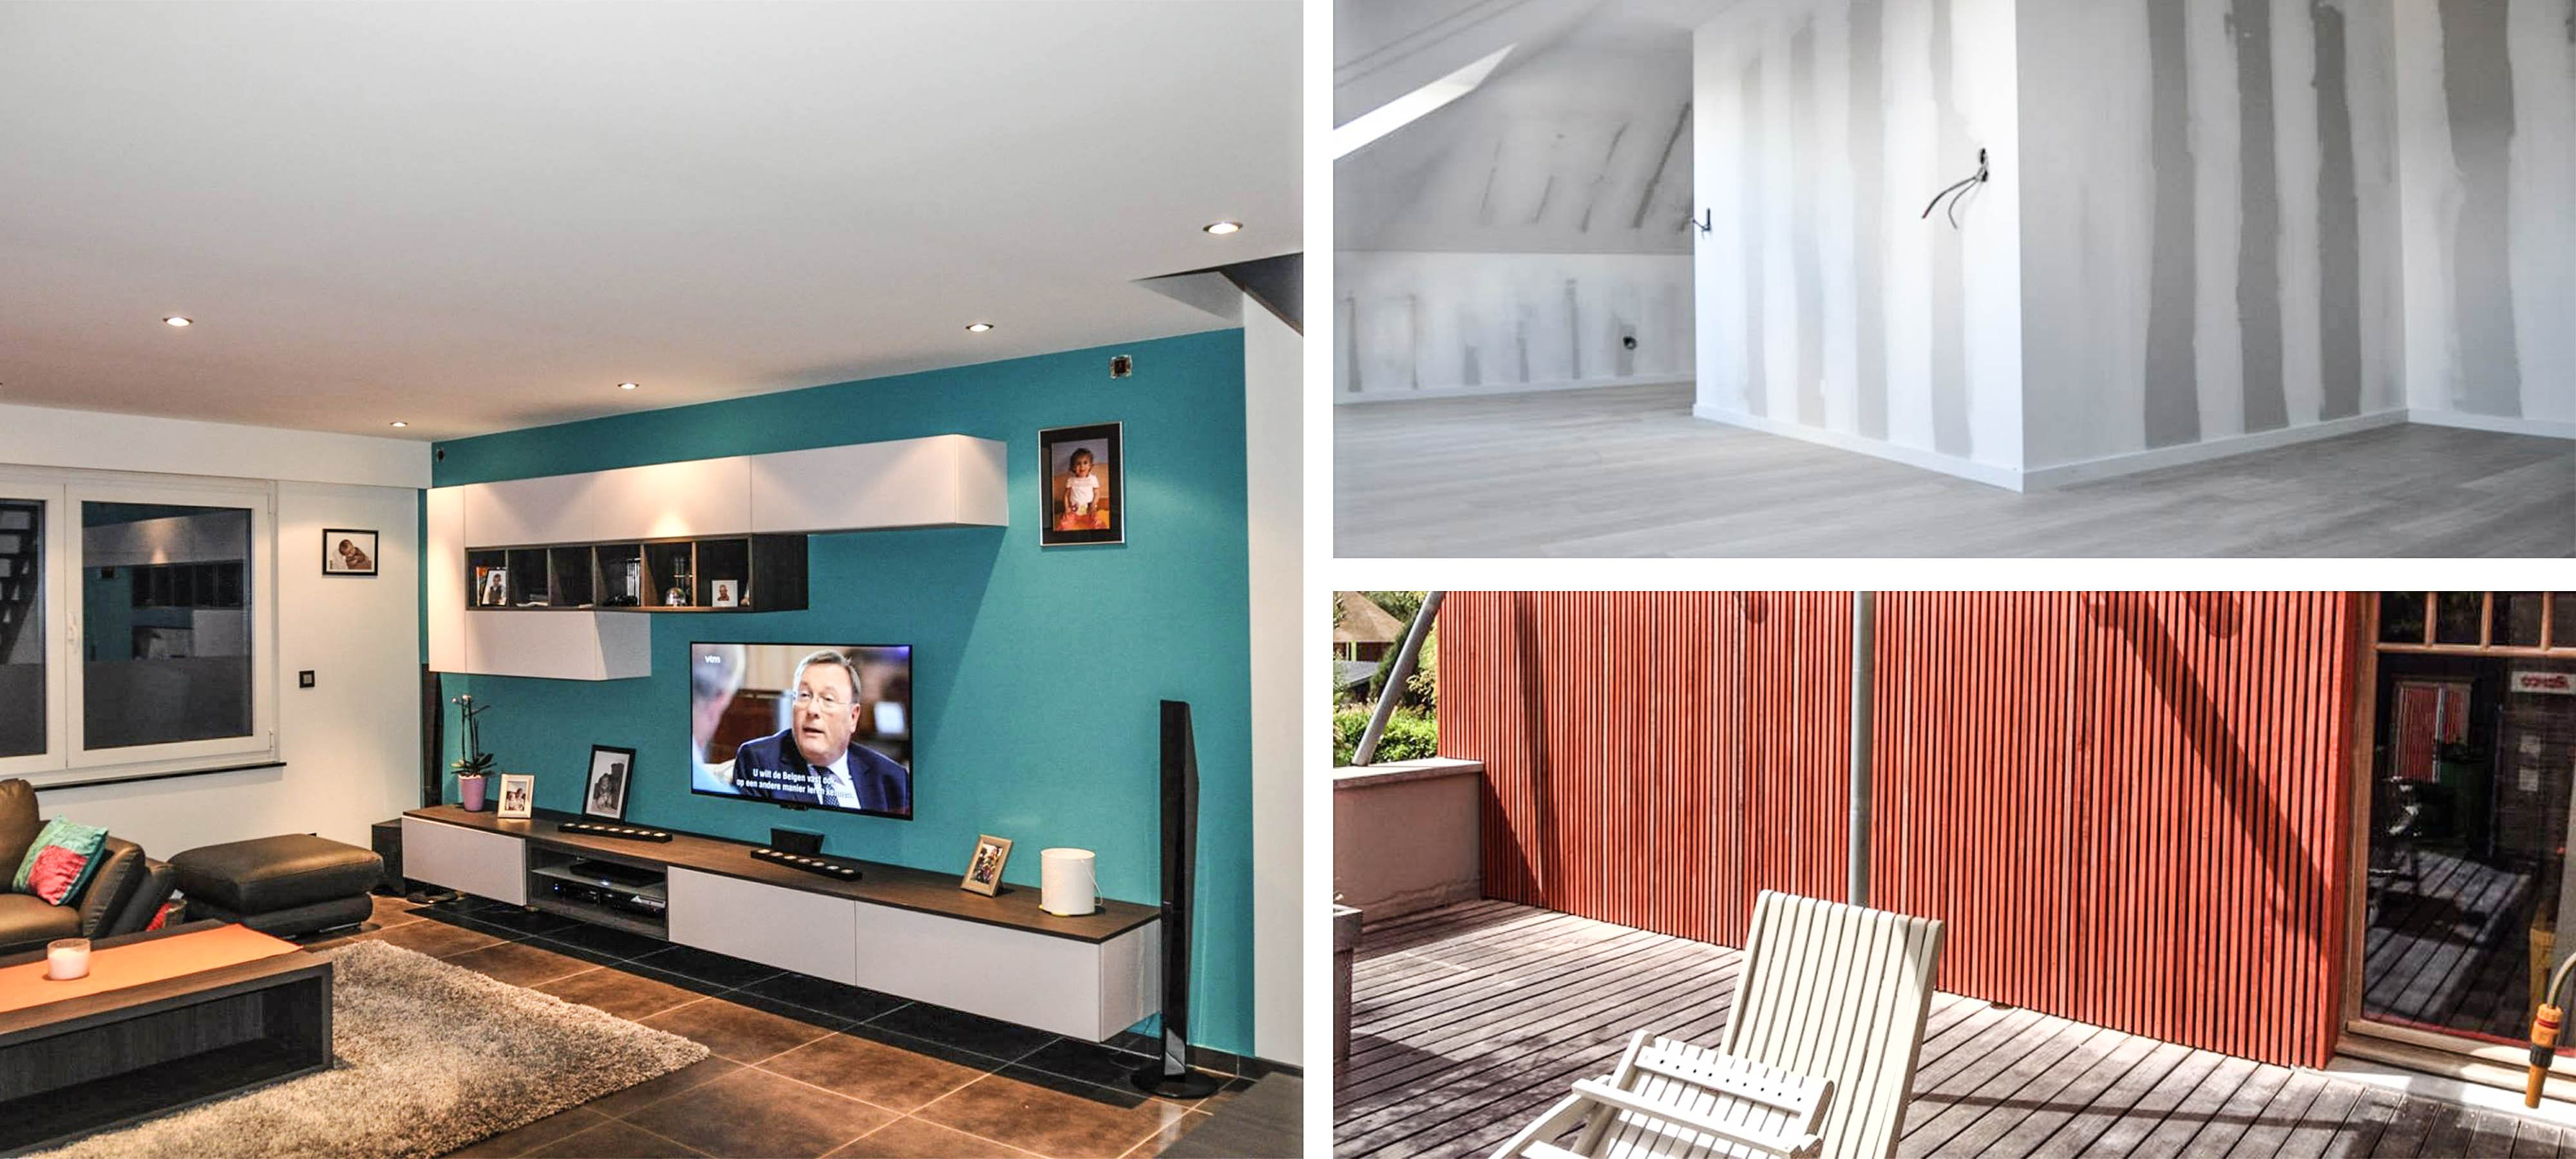 Header VS Concept - Interieur renovatie Dendermonde